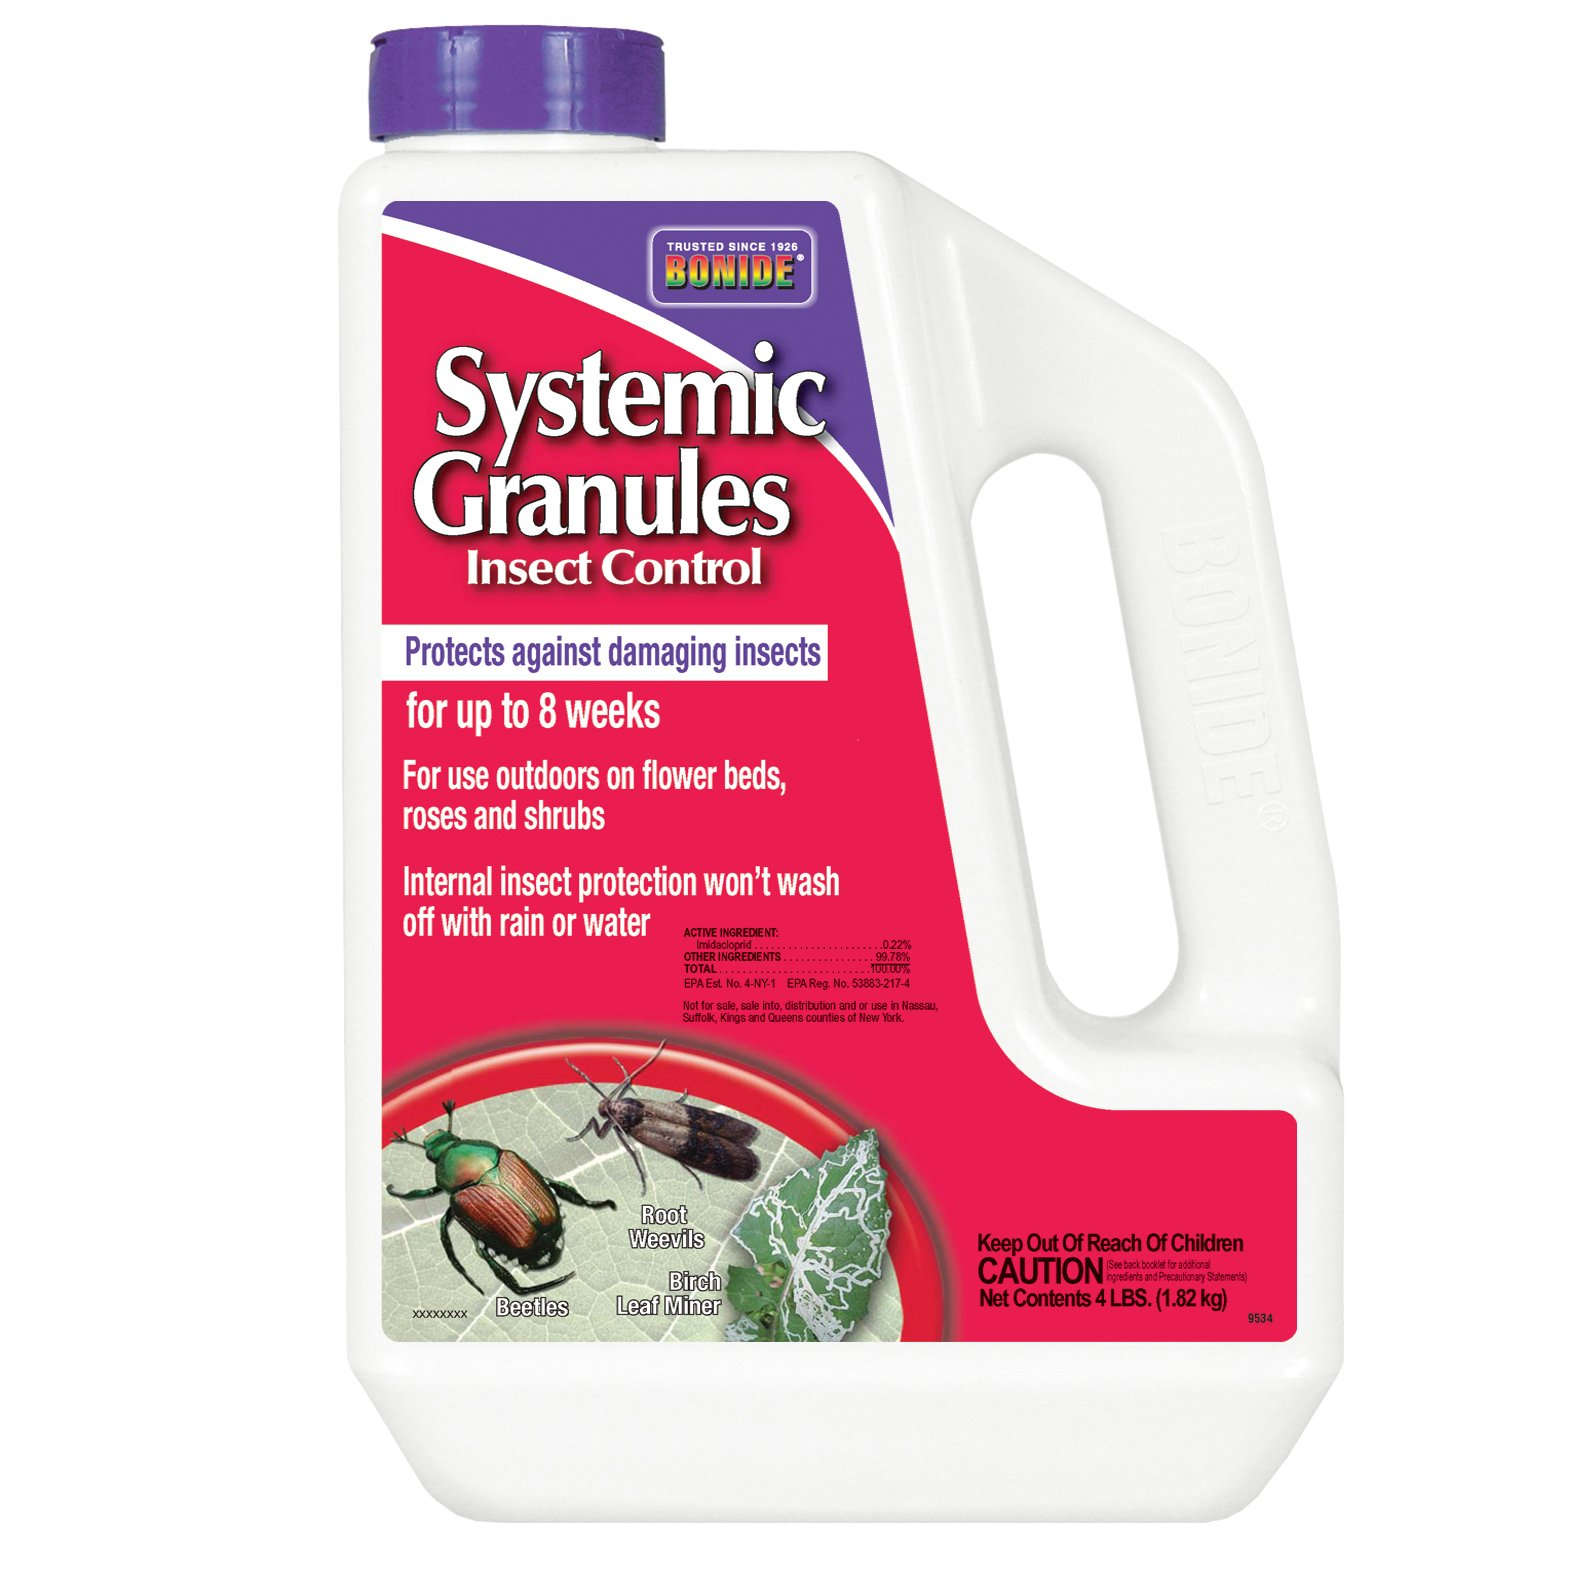 Systemic Granules .22% 4 lb. by Bonide